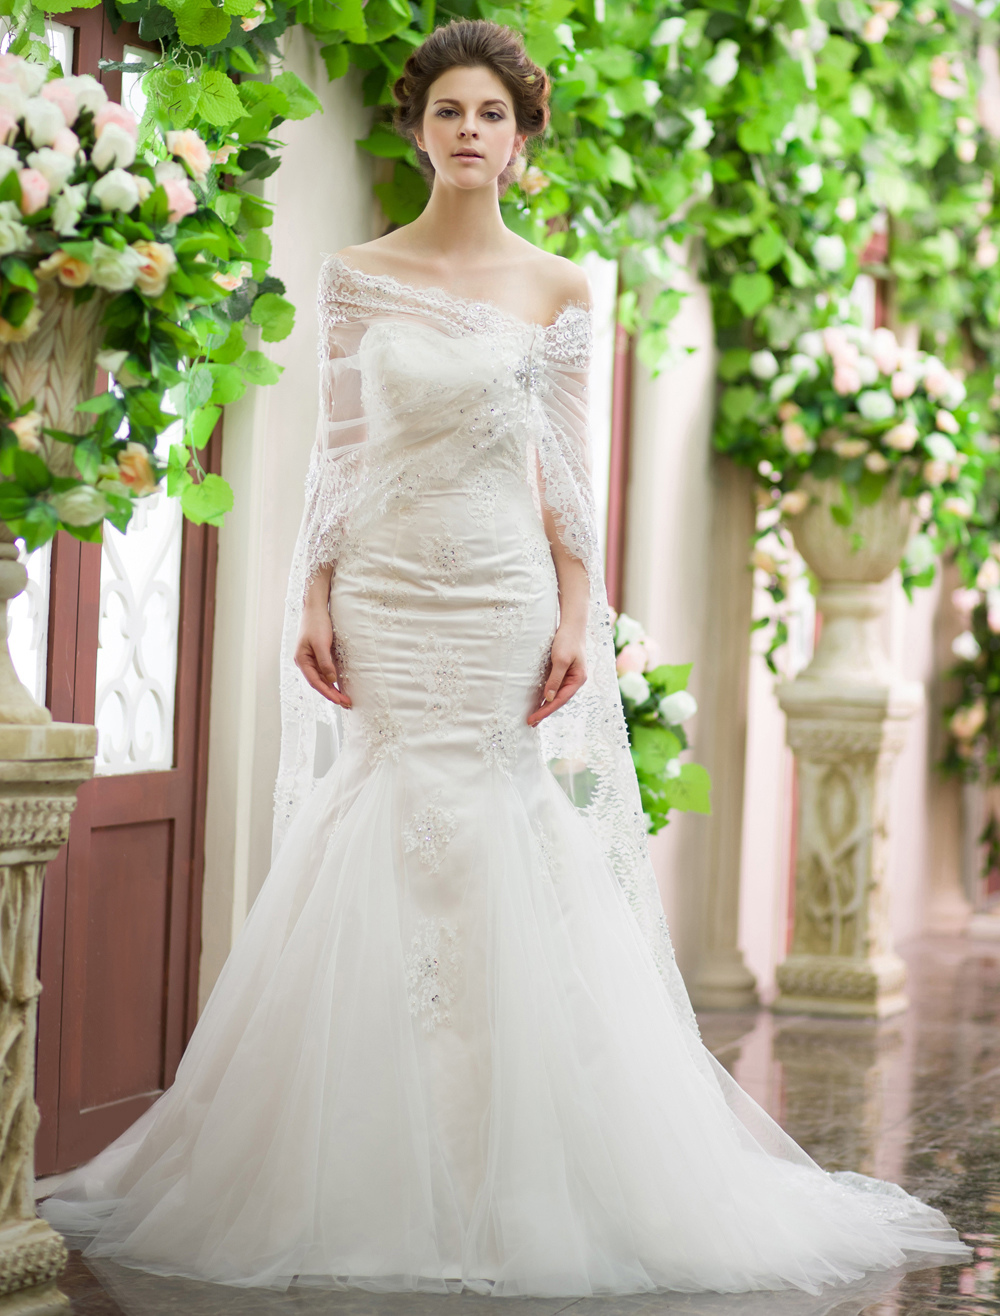 Buy Ivory Mermaid Sweetheart Sequin Wedding Dress With Court Train Milanoo for $255.58 in Milanoo store